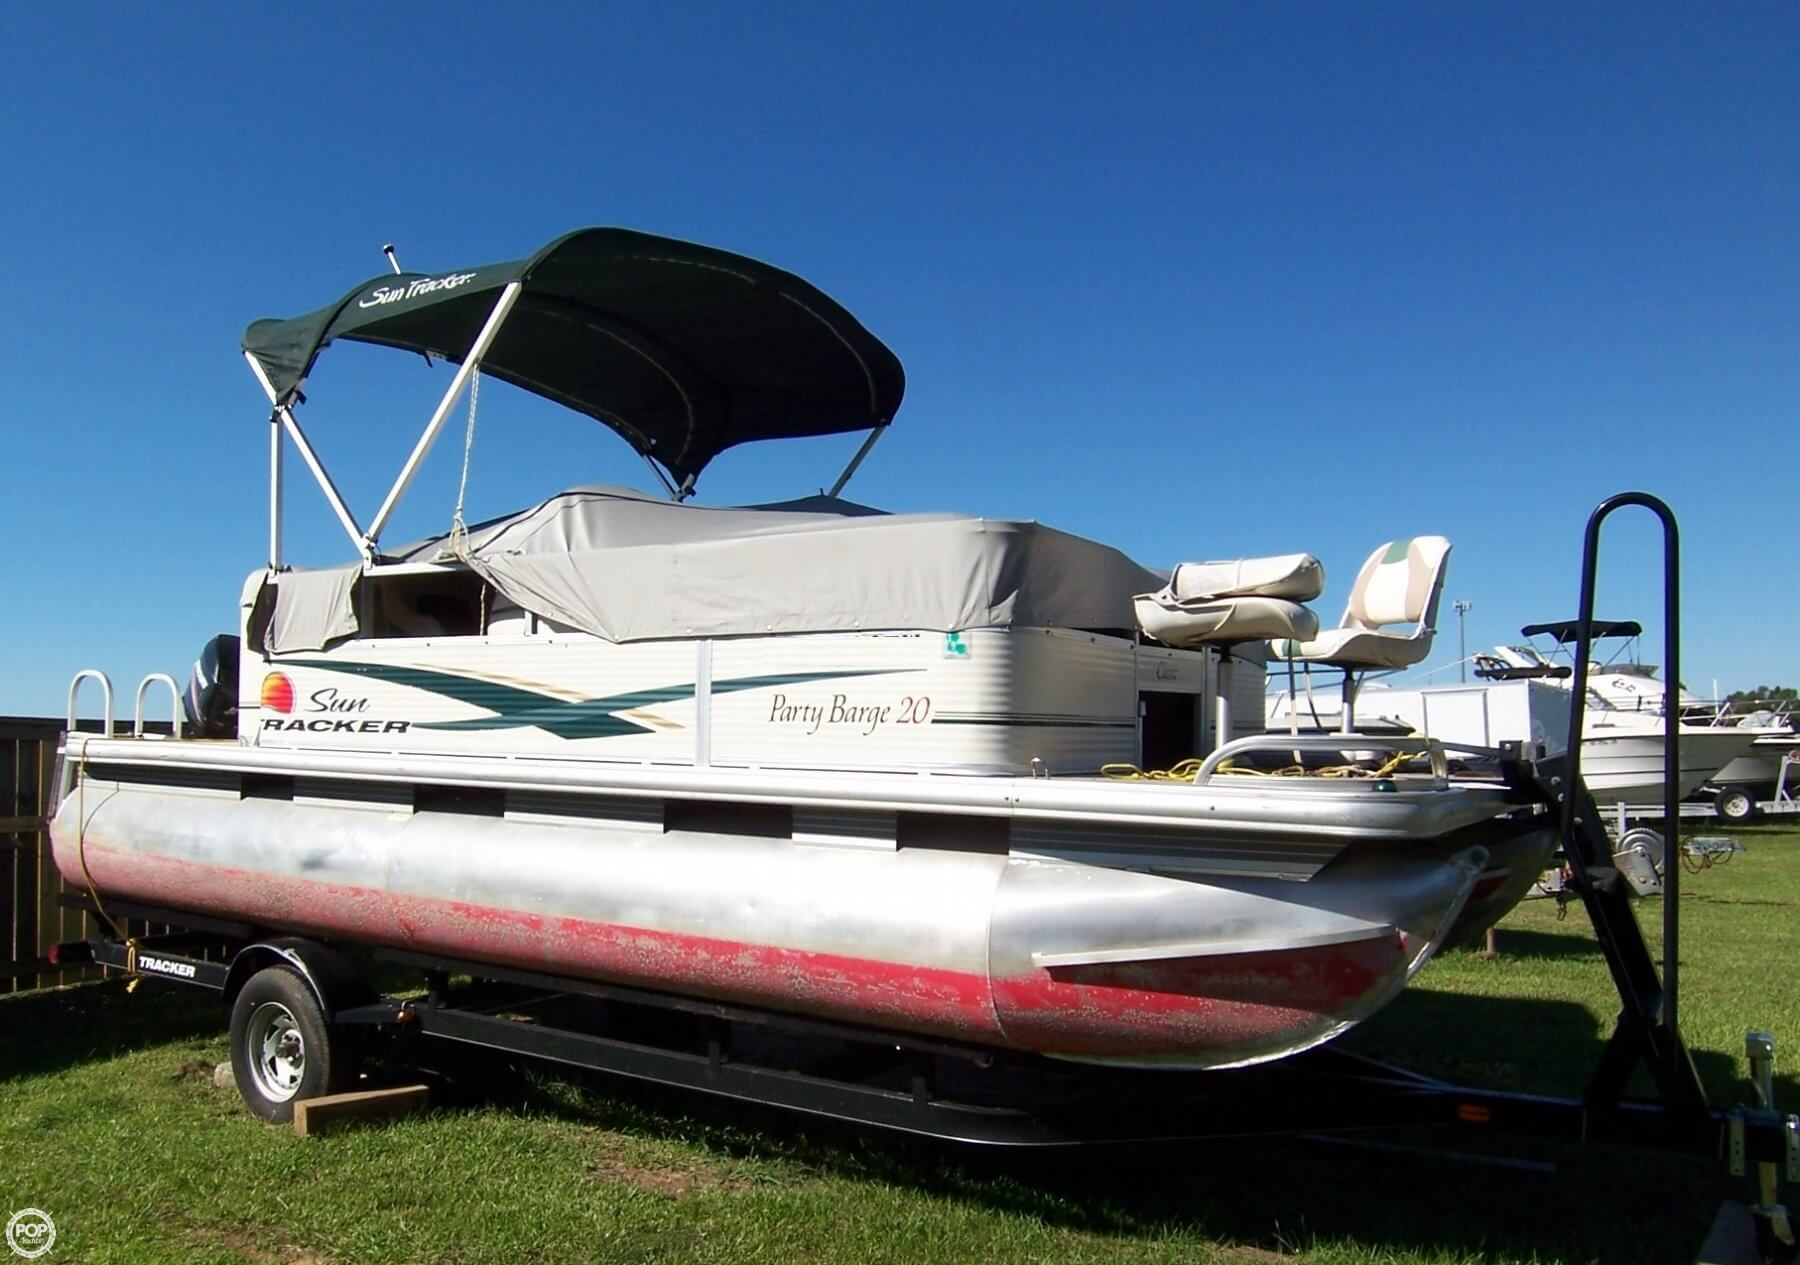 Sun Tracker Party Barge 20 Classic boat for sale in Mandeville, LA for  $13,000   140021